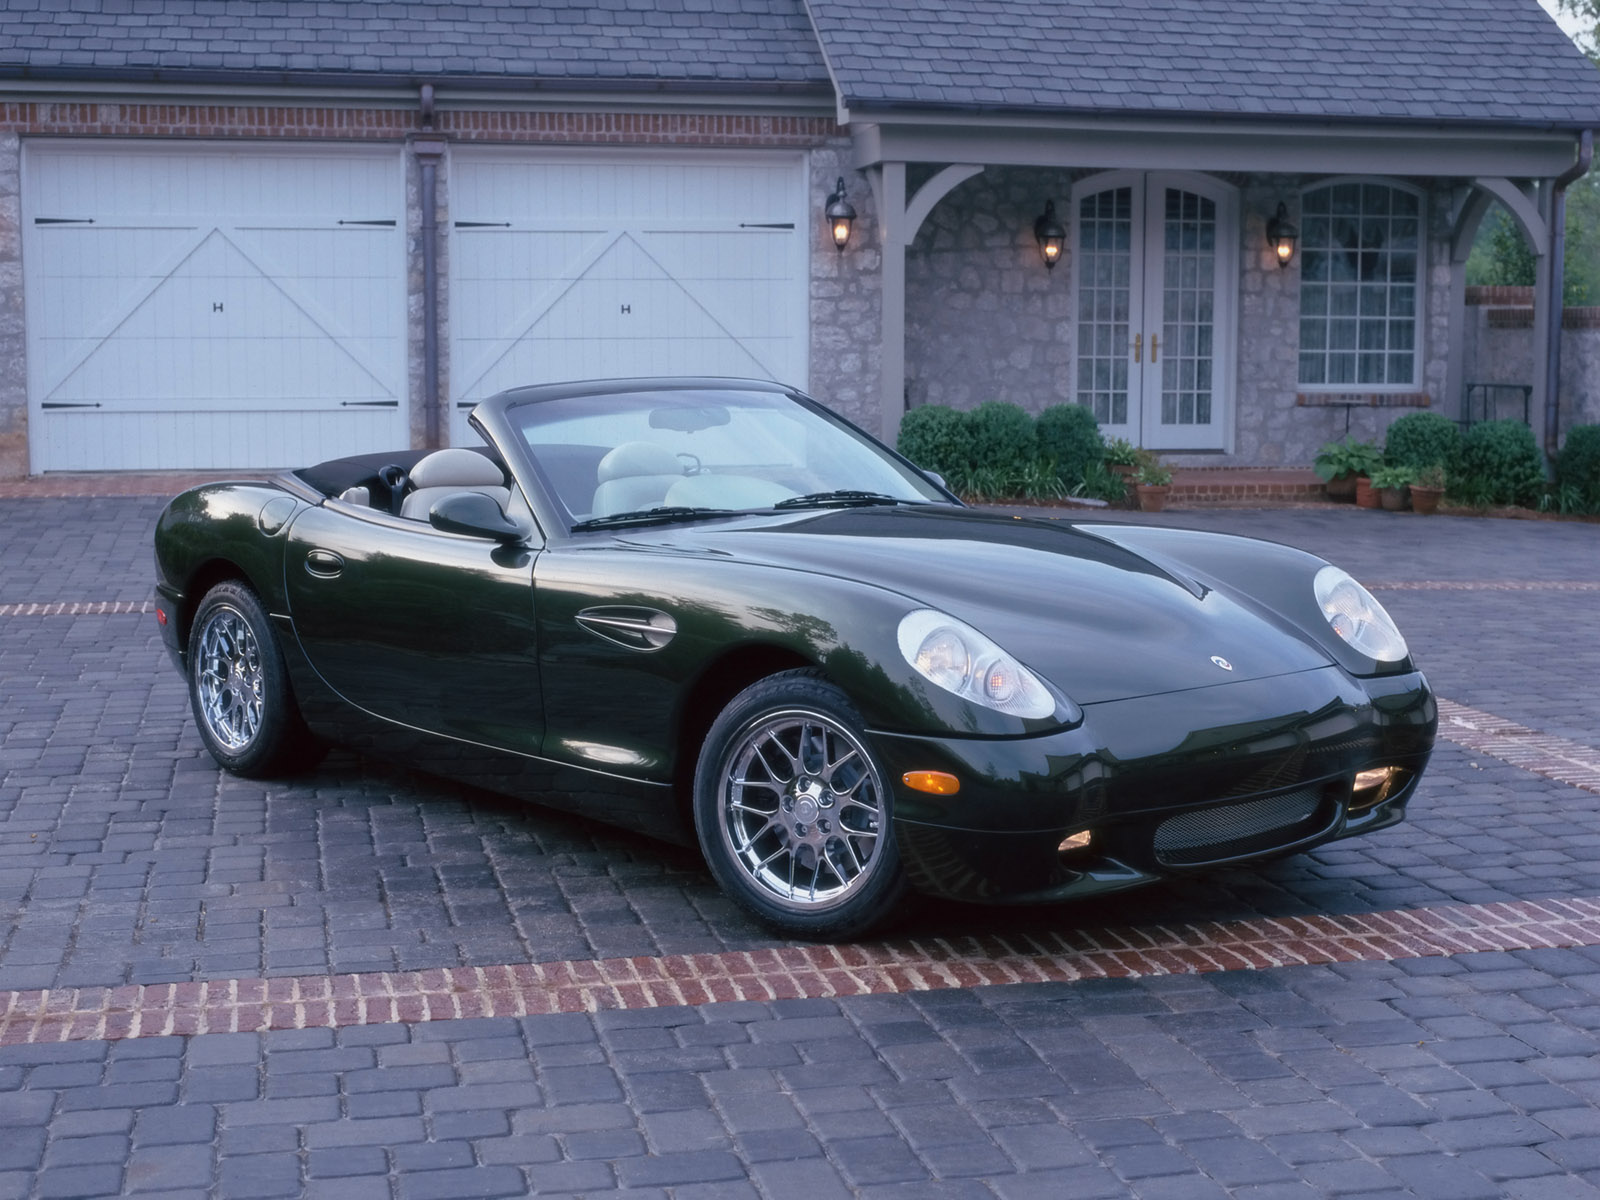 panoz images #6